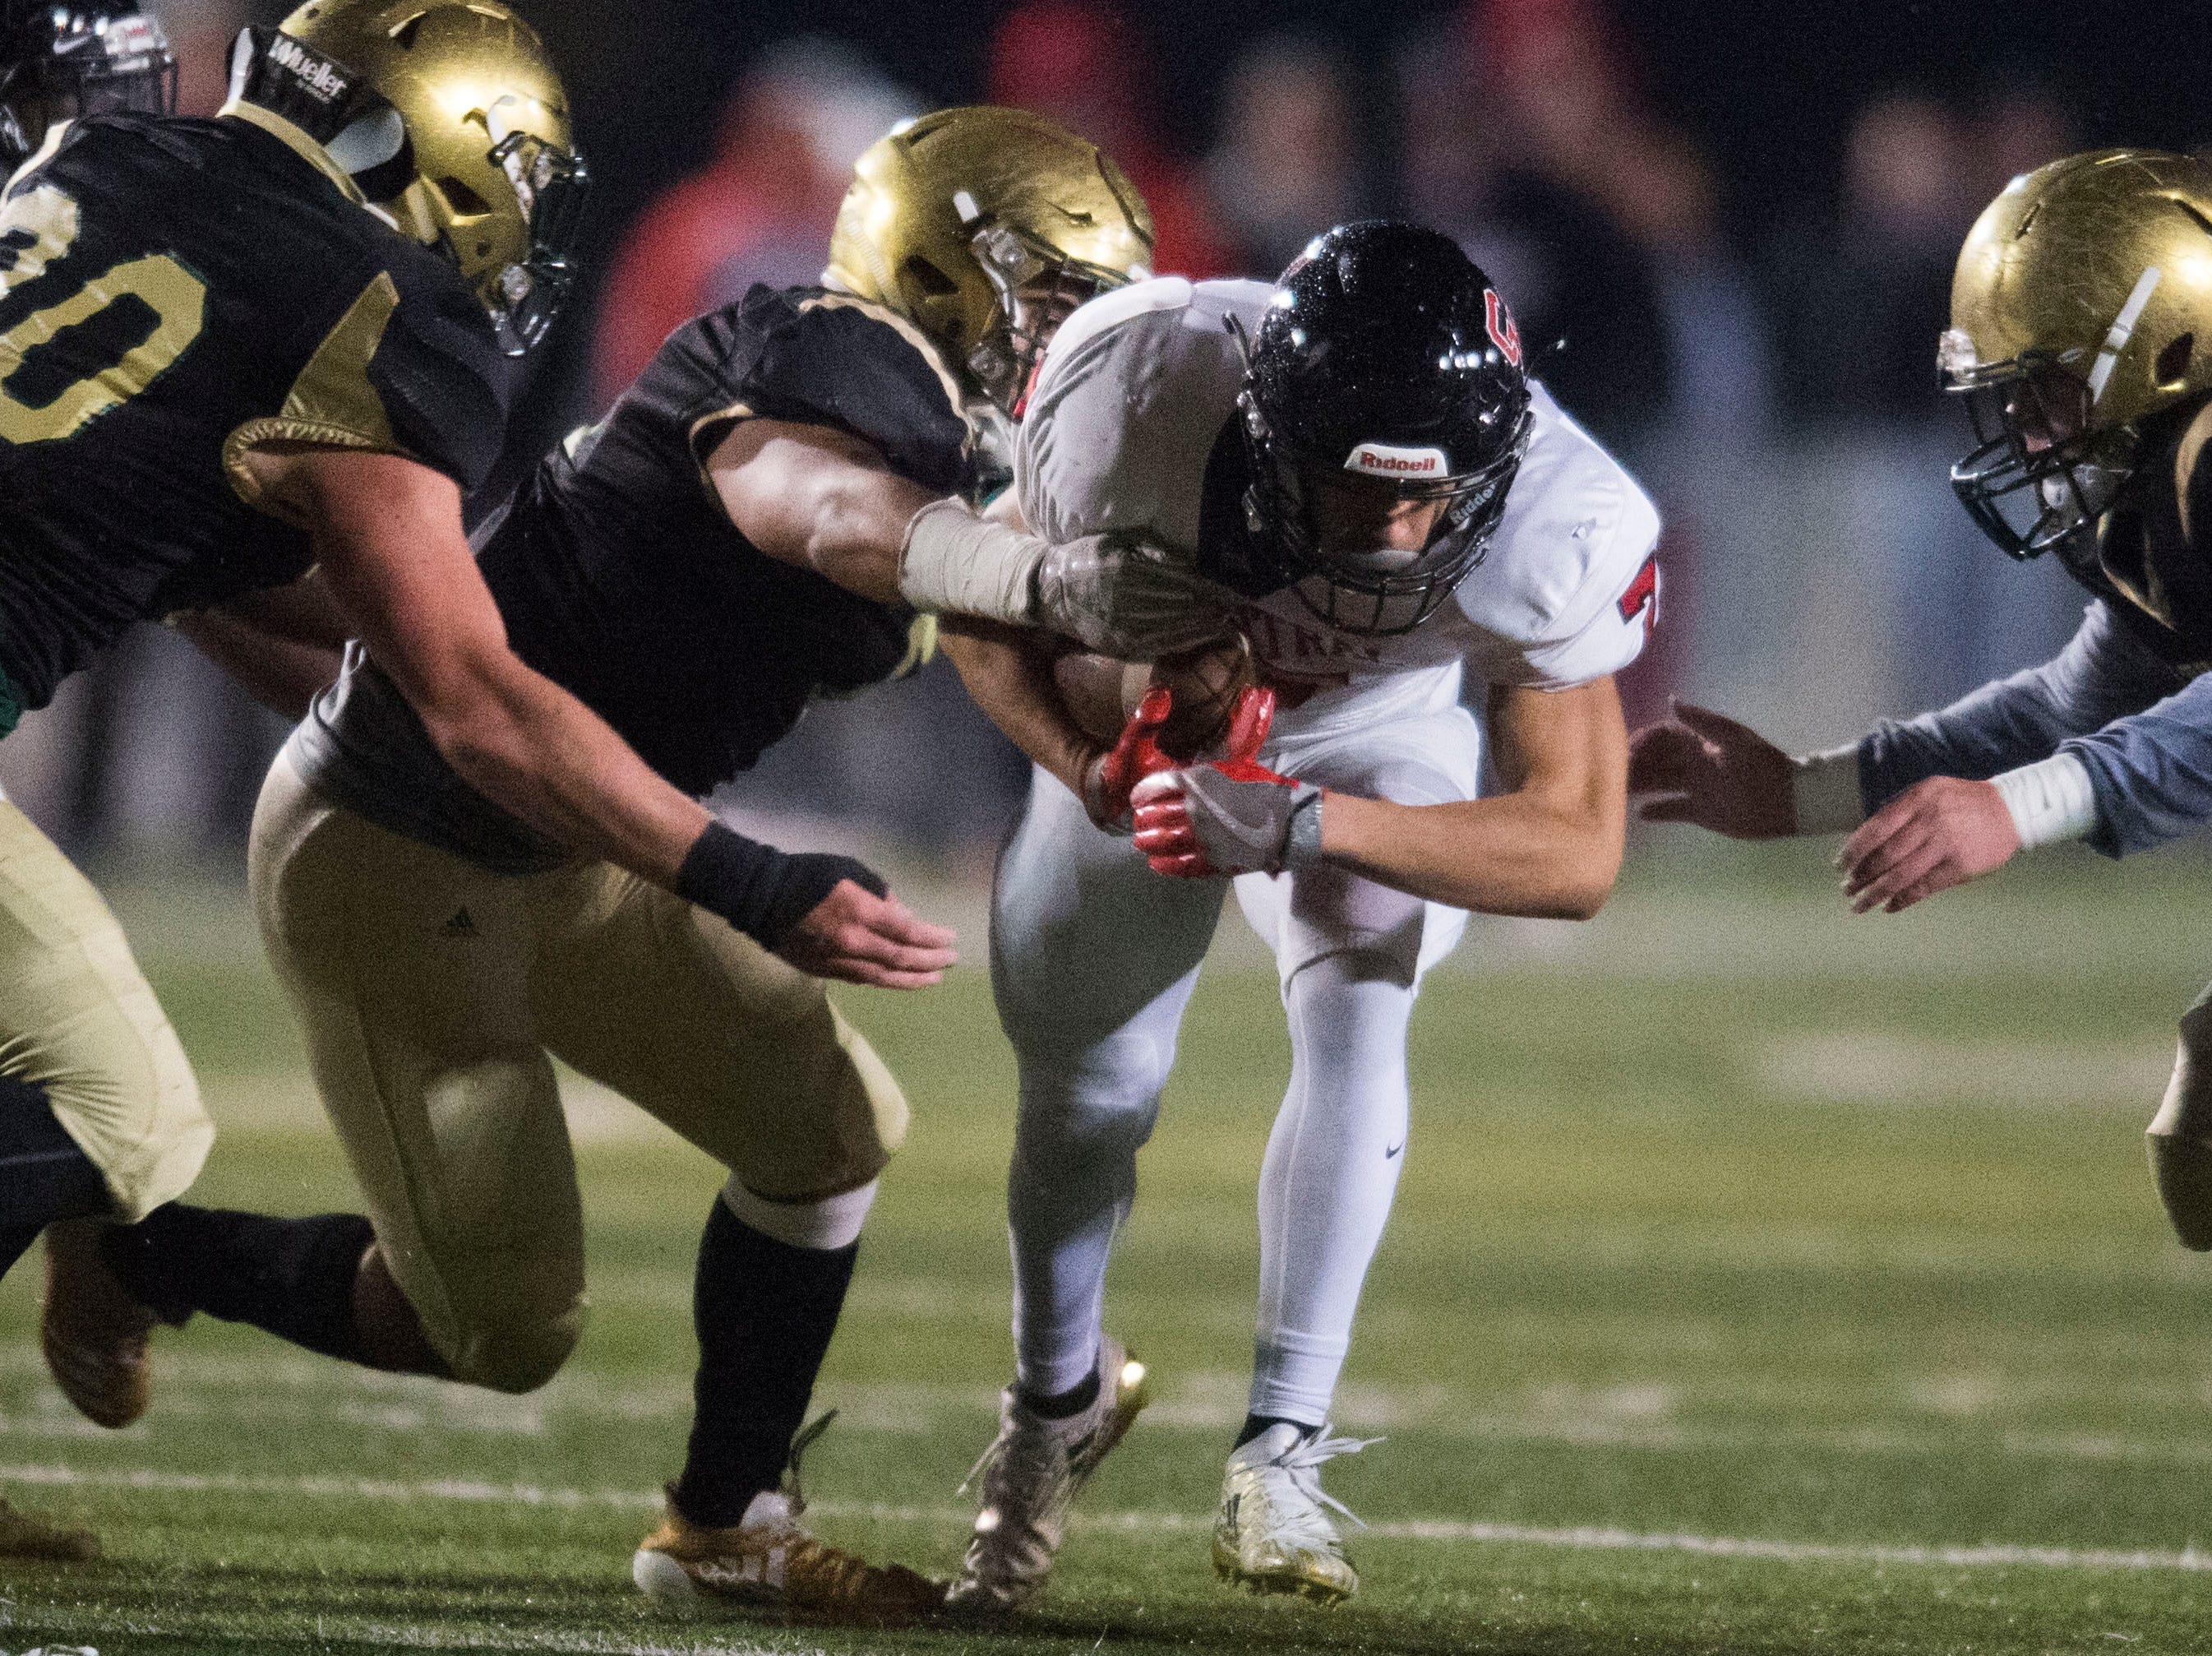 Central's Braden Gaston (7) is taken down during a Class 5A semifinal game between Central at Catholic Friday, Nov. 23, 2018. Central defeated Catholic 24-19.